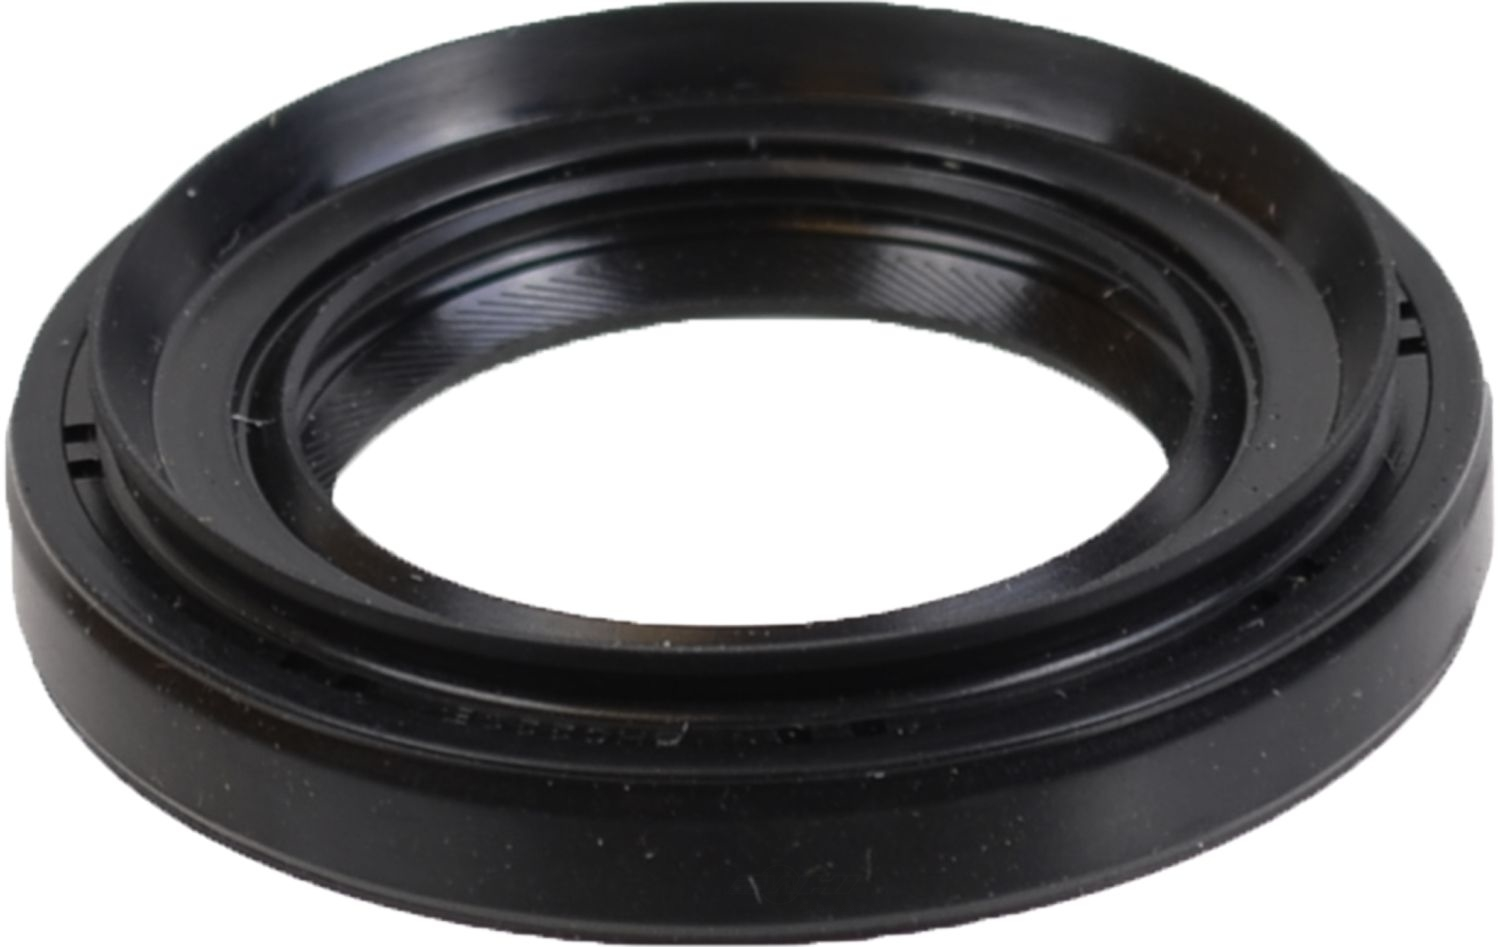 SKF (CHICAGO RAWHIDE) - Auto Trans Output Shaft Seal (Right) - SKF 13726